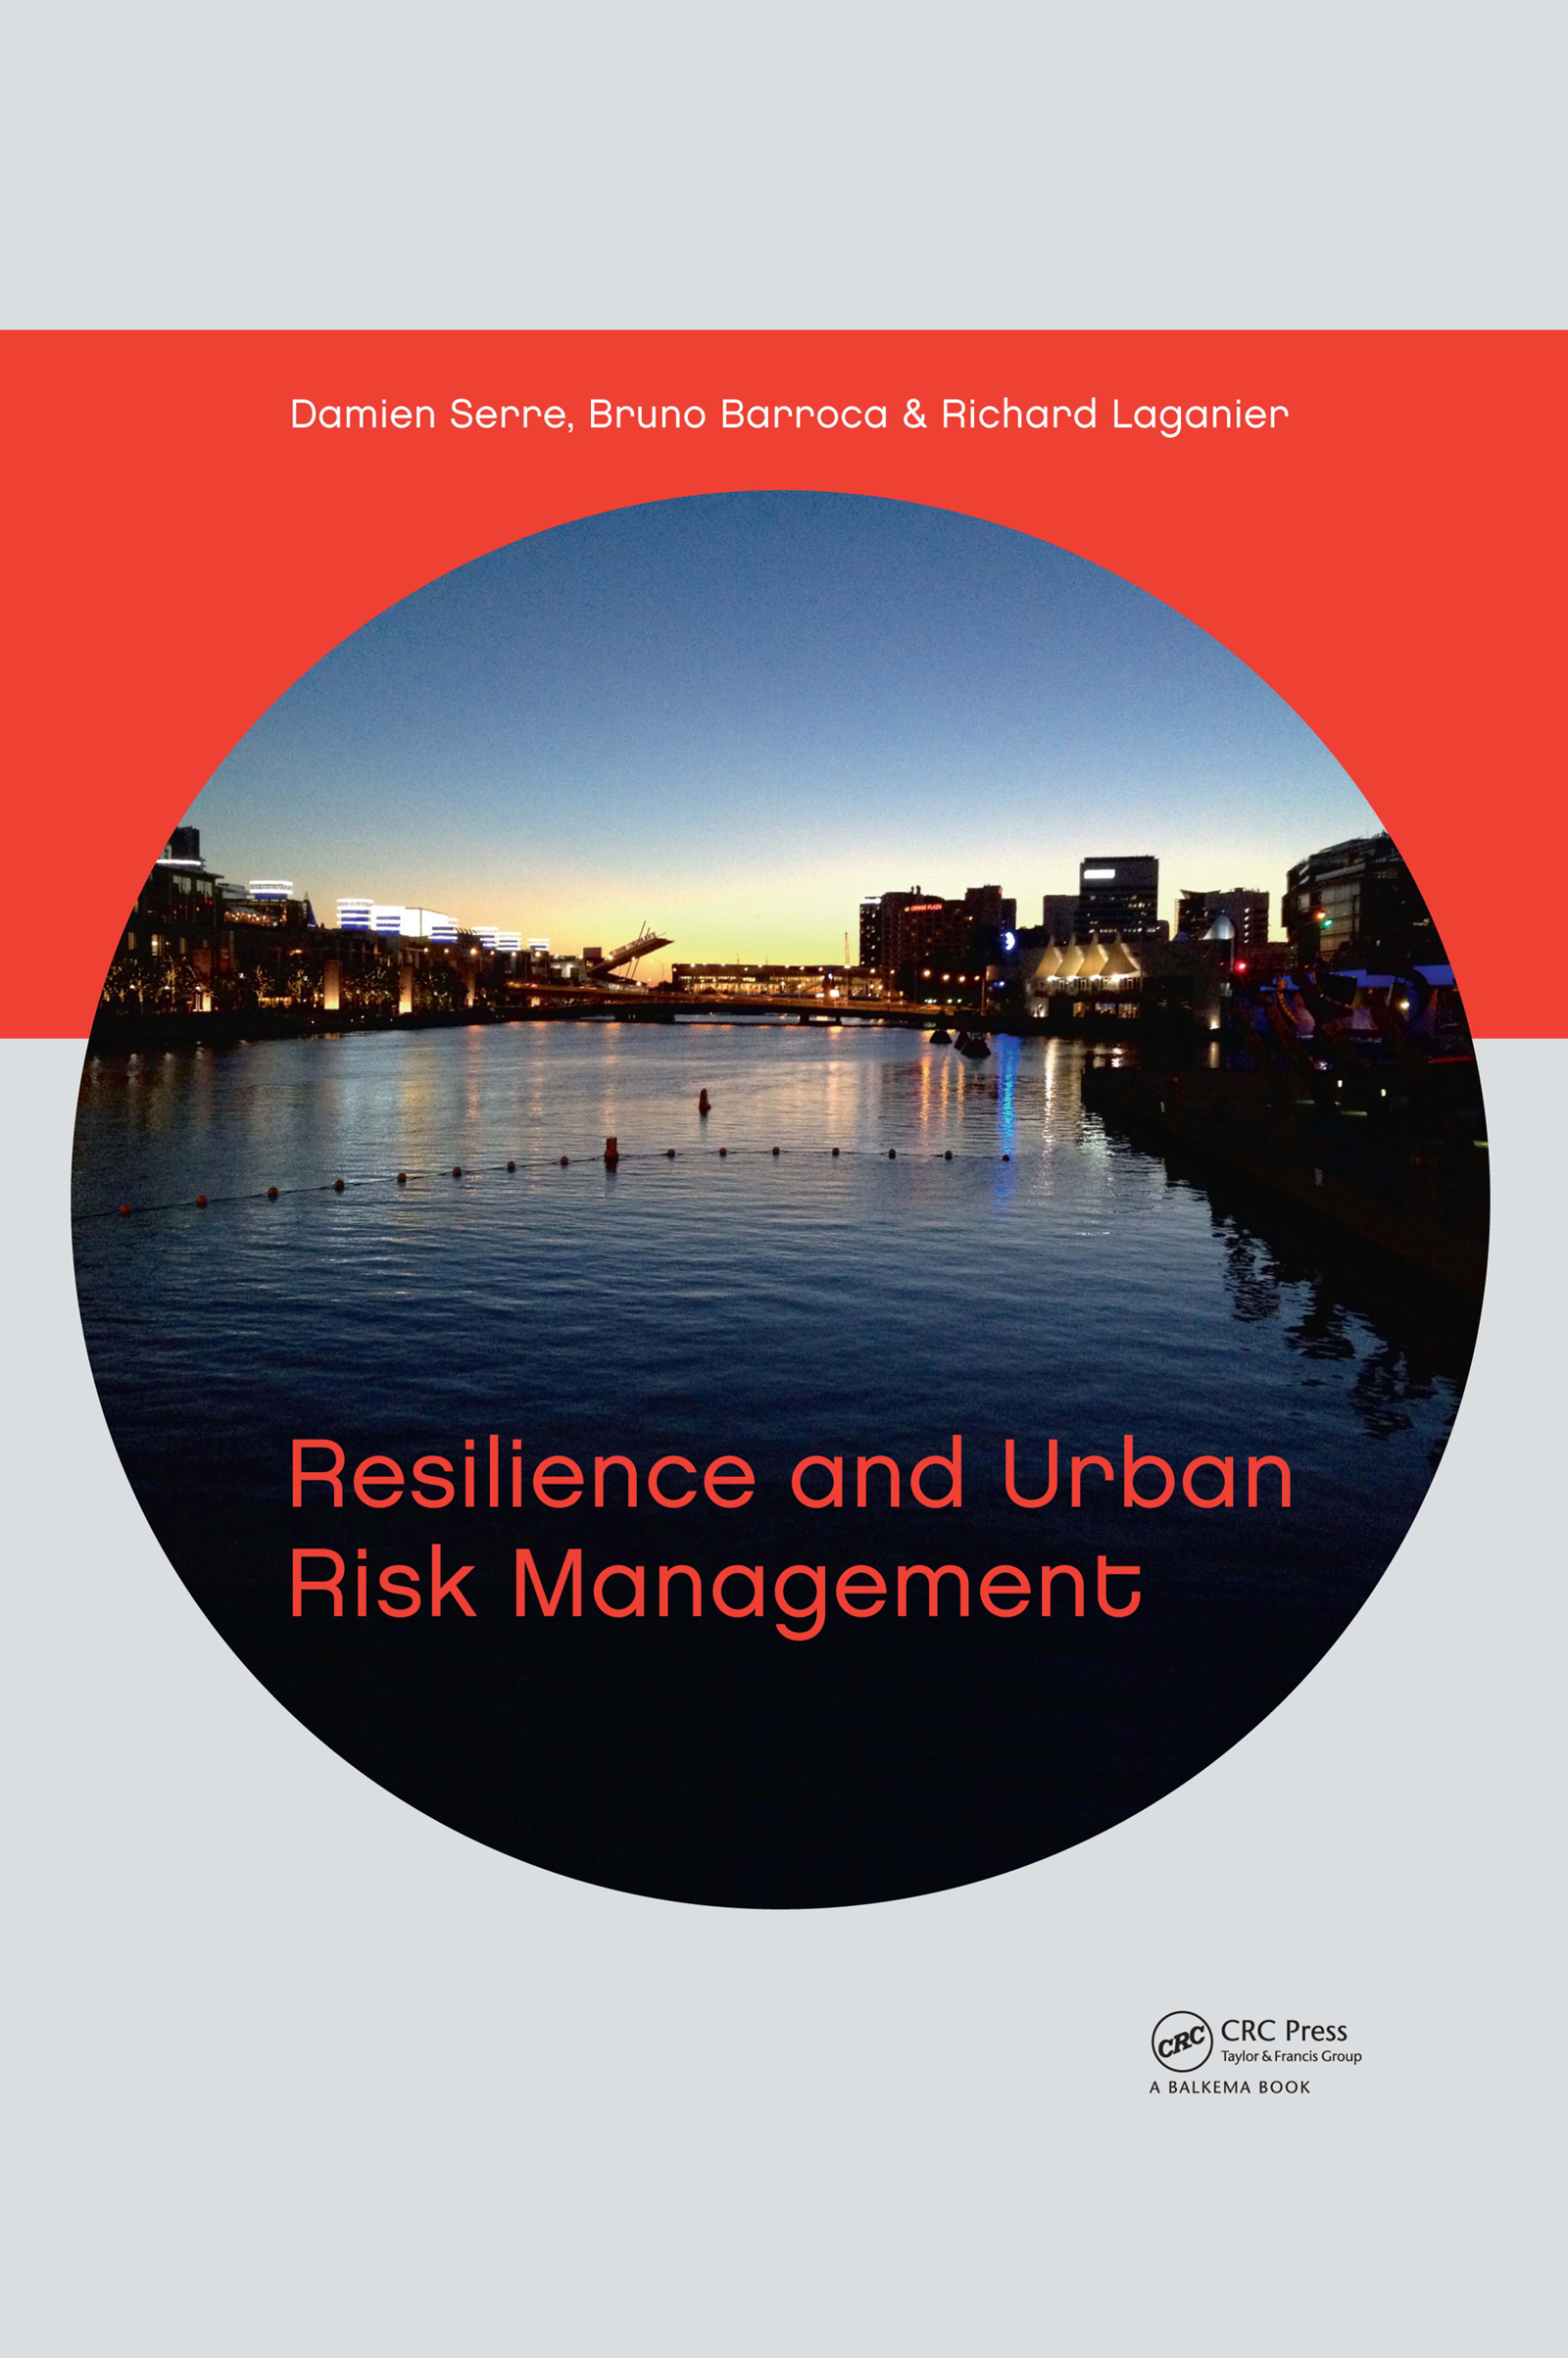 Resilience and Urban Risk Management (Pack - Book and CD) book cover